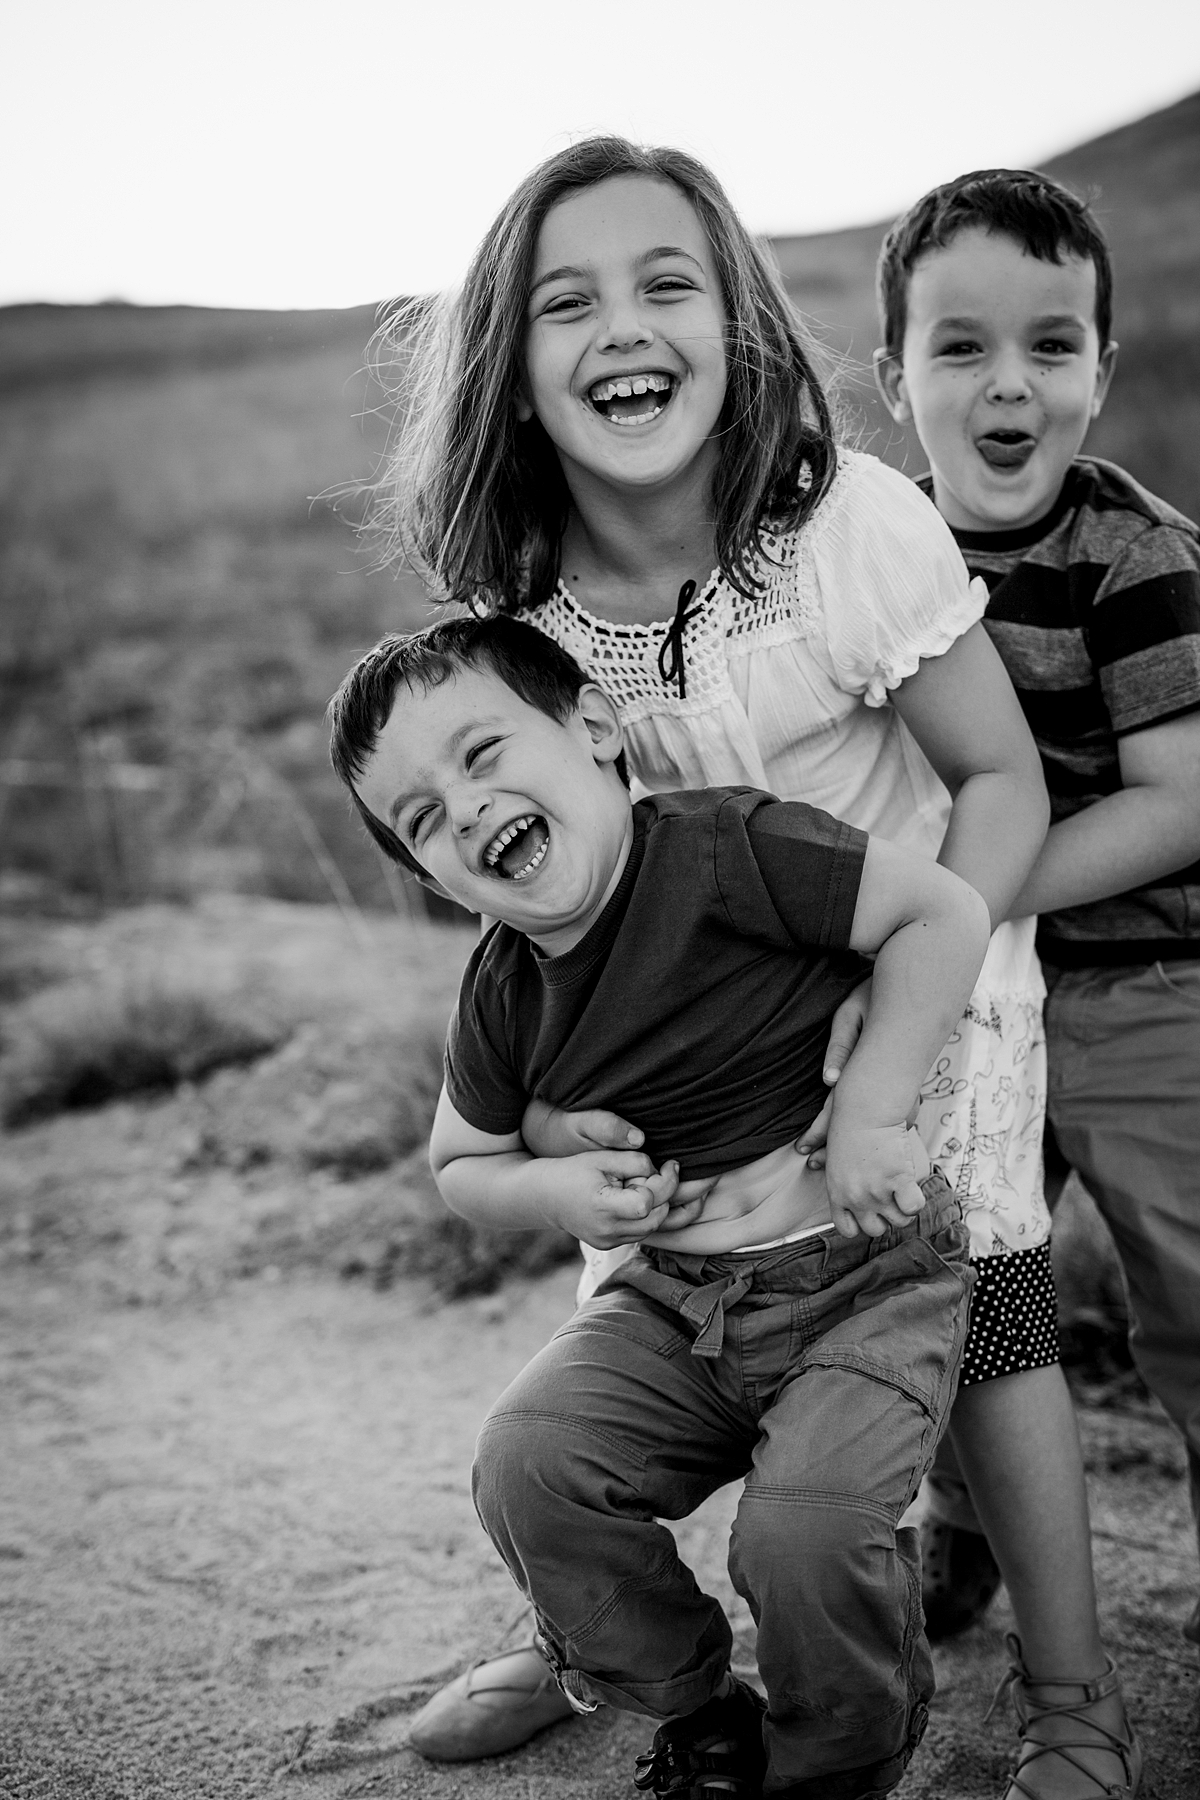 Orange County family photographer. Black and white portrait of brothers and sister laughing and mucking around at family photo shoot at Quail Hill